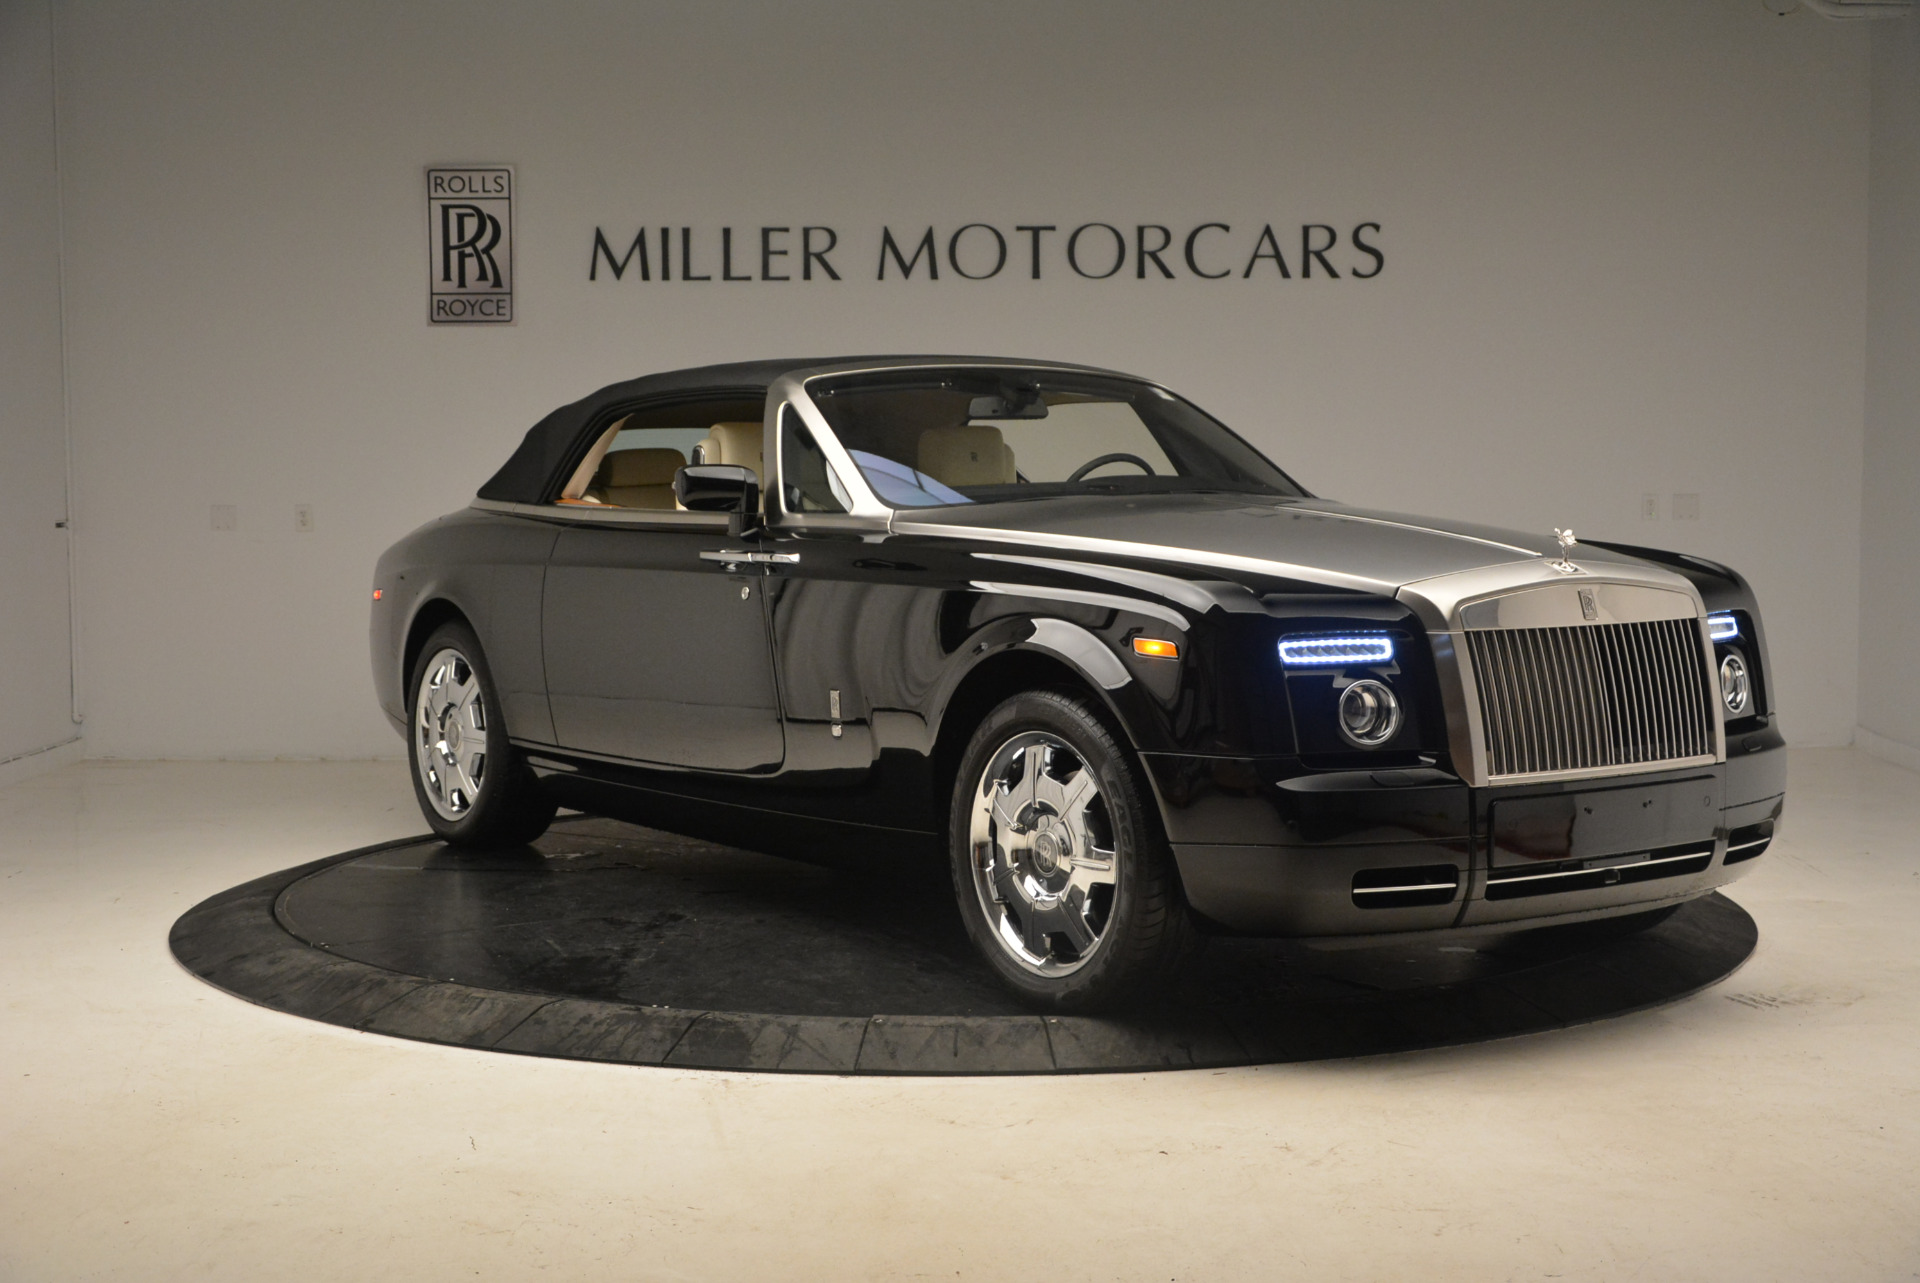 Used 2009 Rolls-Royce Phantom Drophead Coupe  For Sale In Greenwich, CT 1792_p24